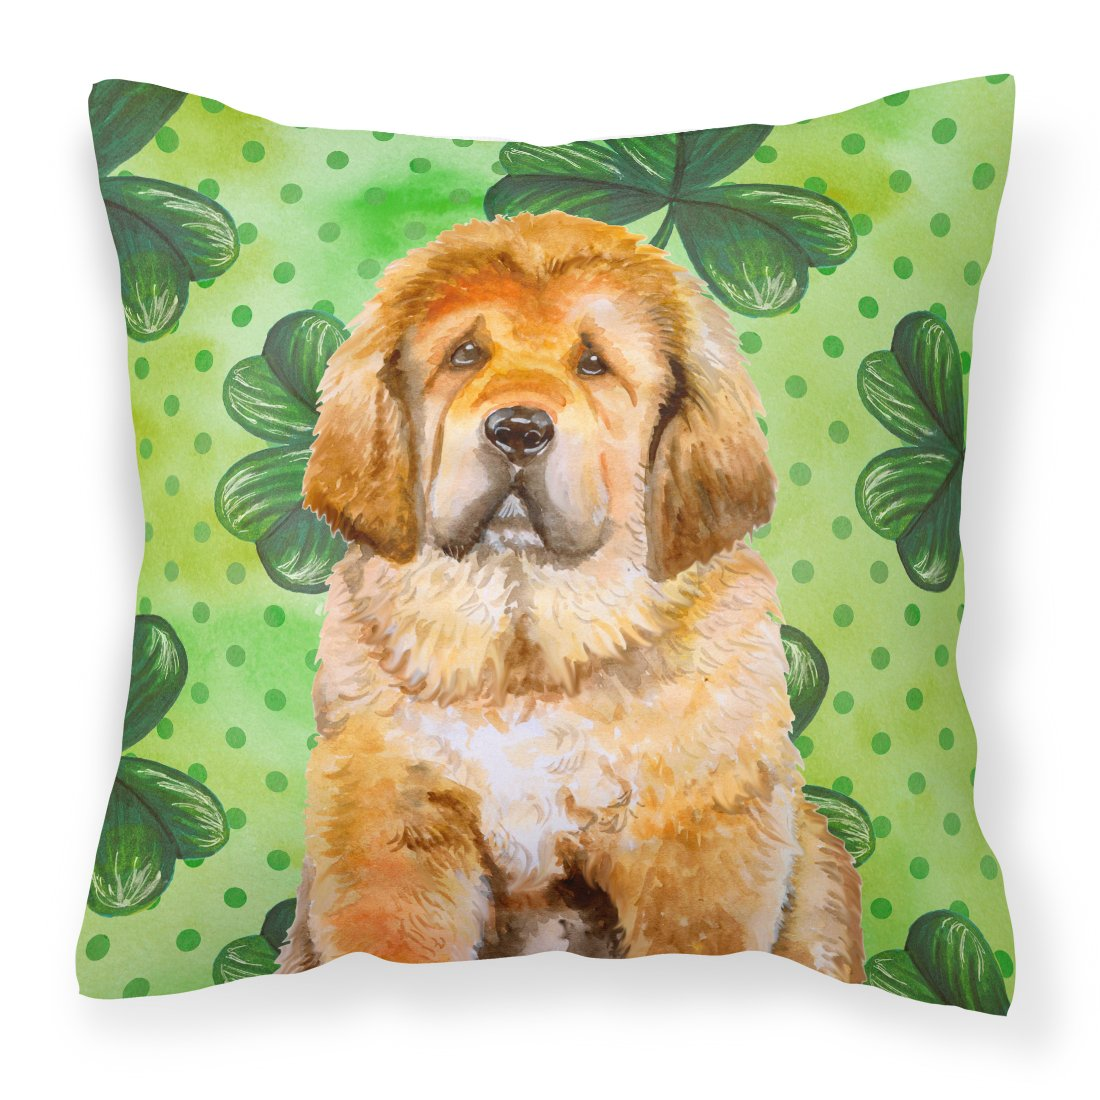 Tibetan Mastiff St Patrick's Fabric Decorative Pillow BB9895PW1818 by Caroline's Treasures